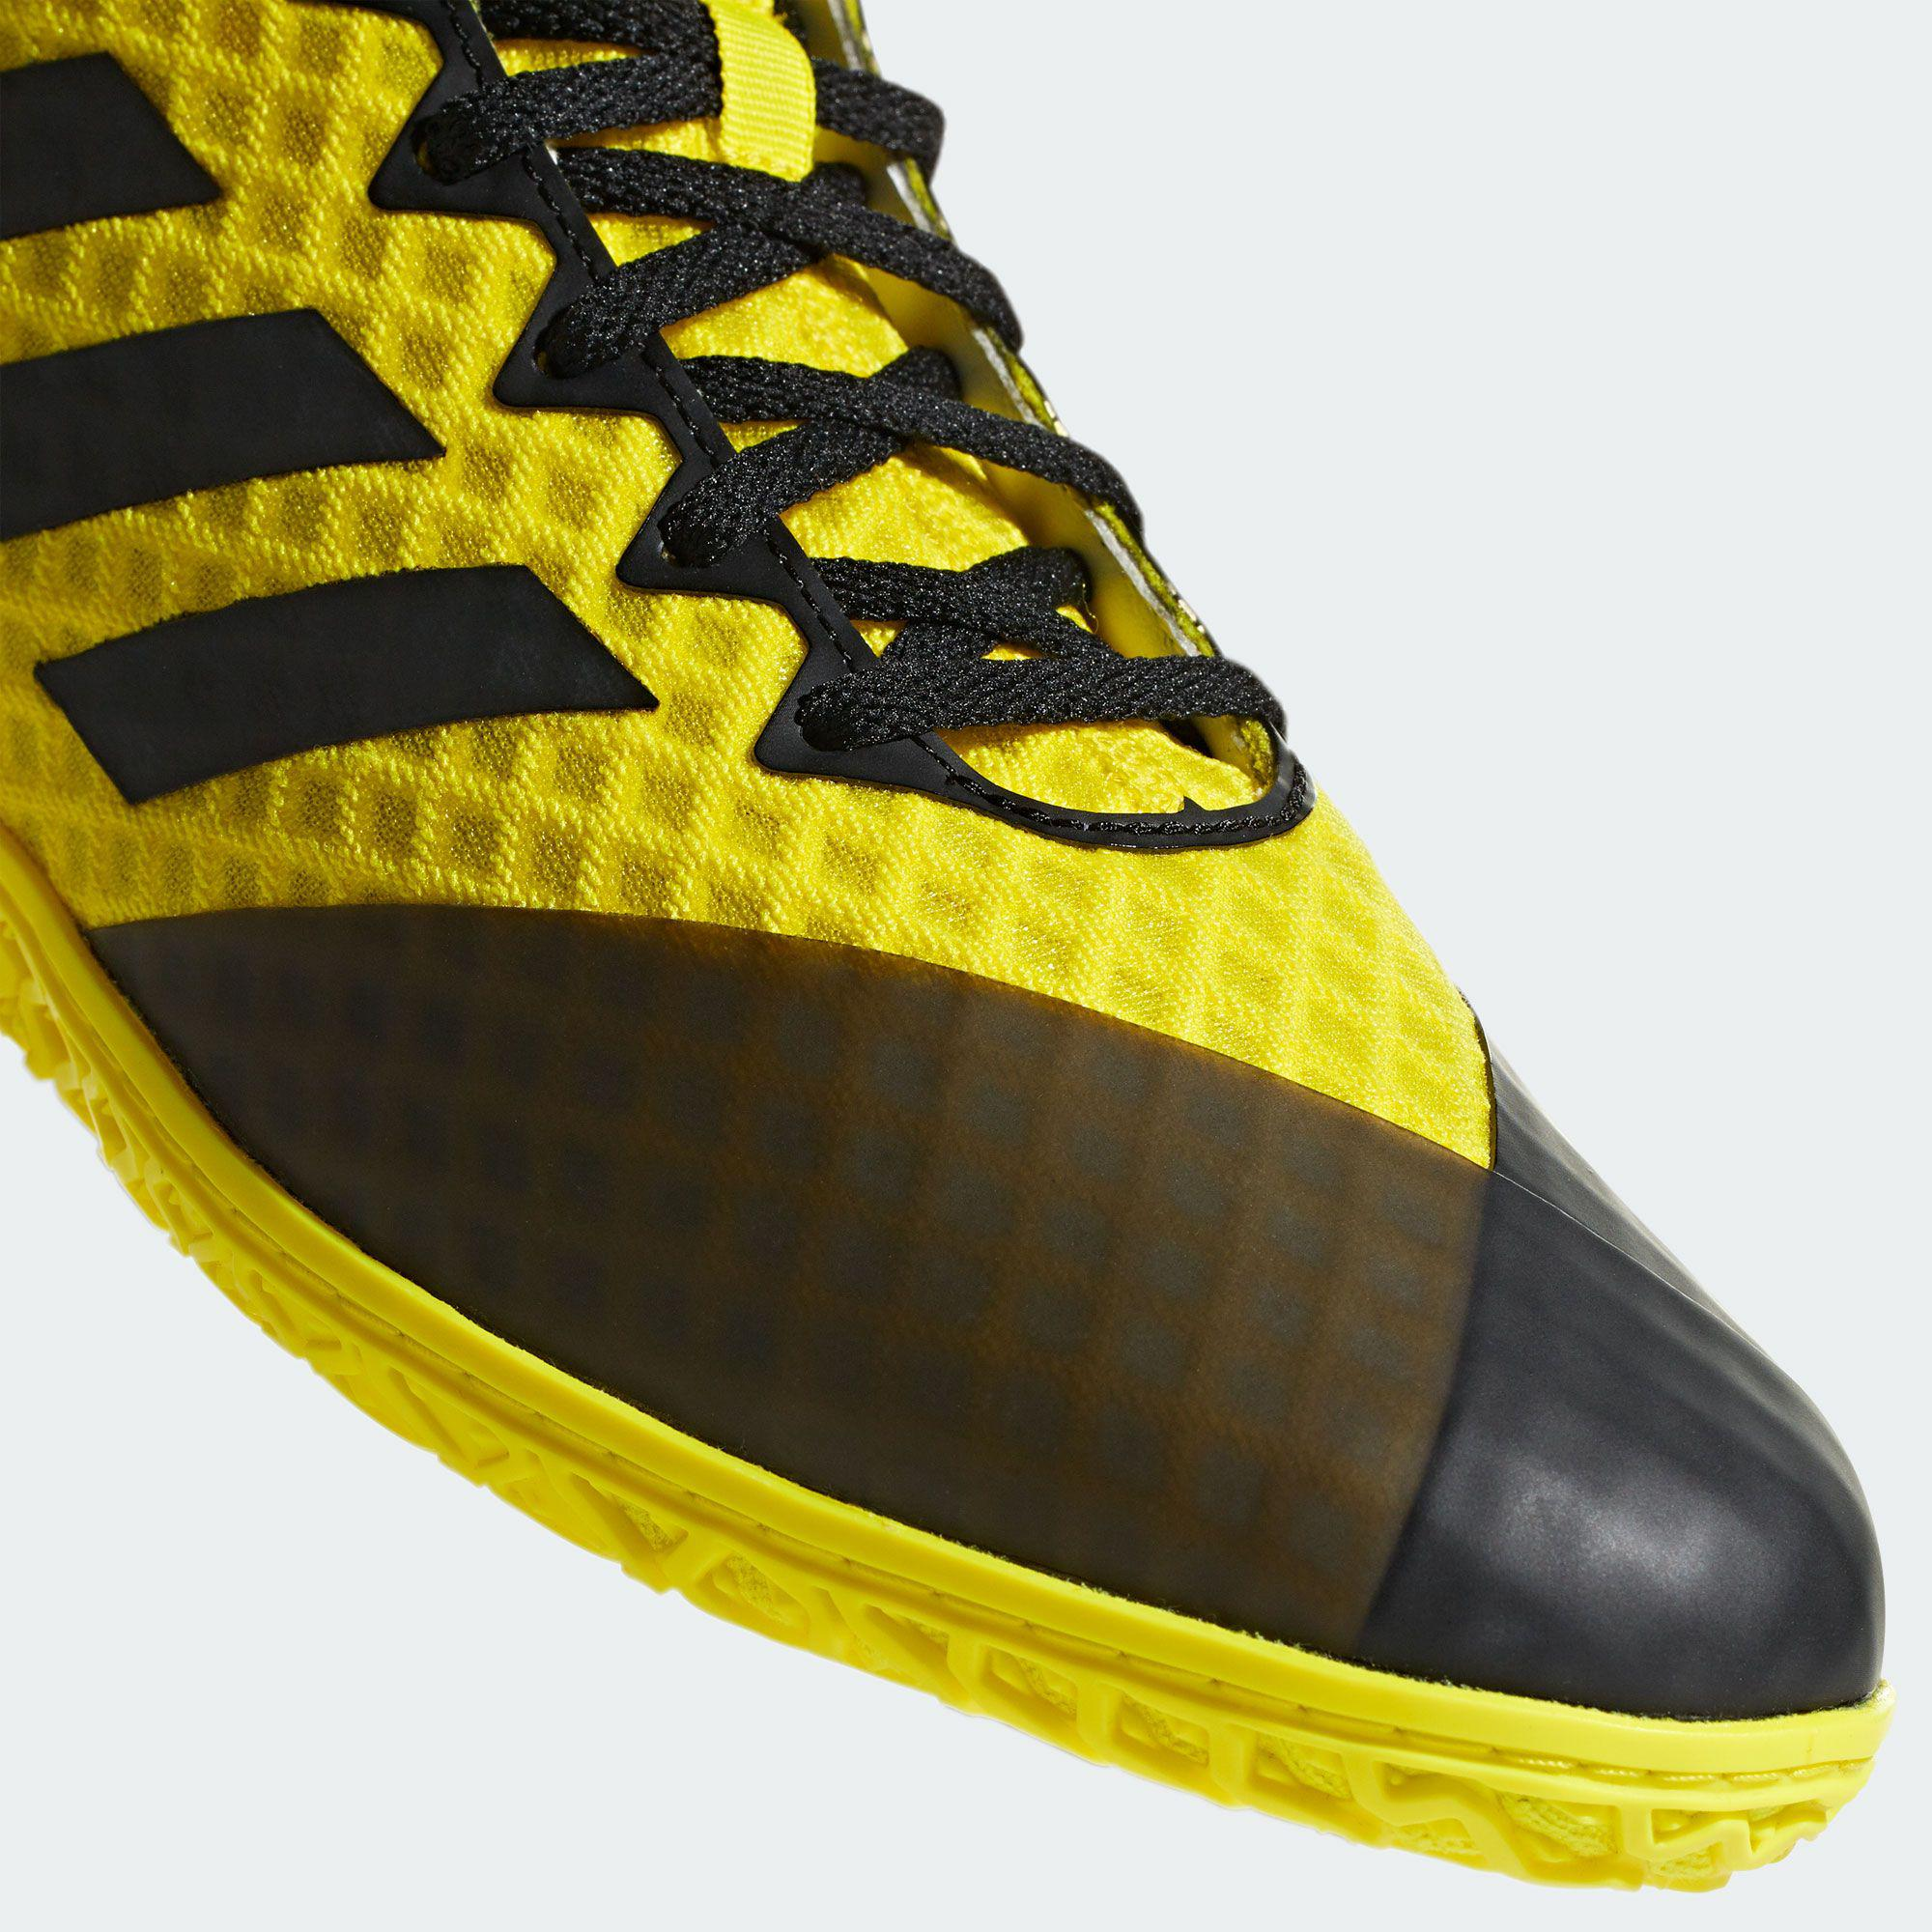 c6dceba06da7 Lyst - adidas Mat Wizard 4 Wrestling Shoes in Yellow for Men